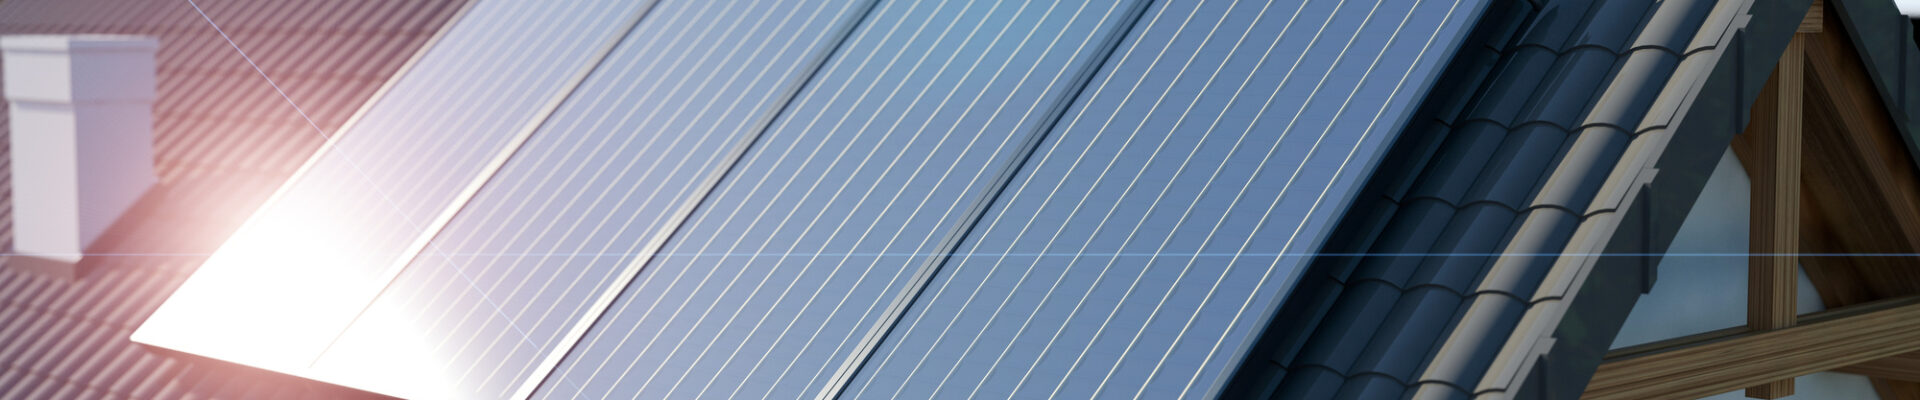 6 Factors to Consider When Choosing Residential Solar Services   Home Interiors   Elle Blonde Luxury Lifestyle Destination Blog